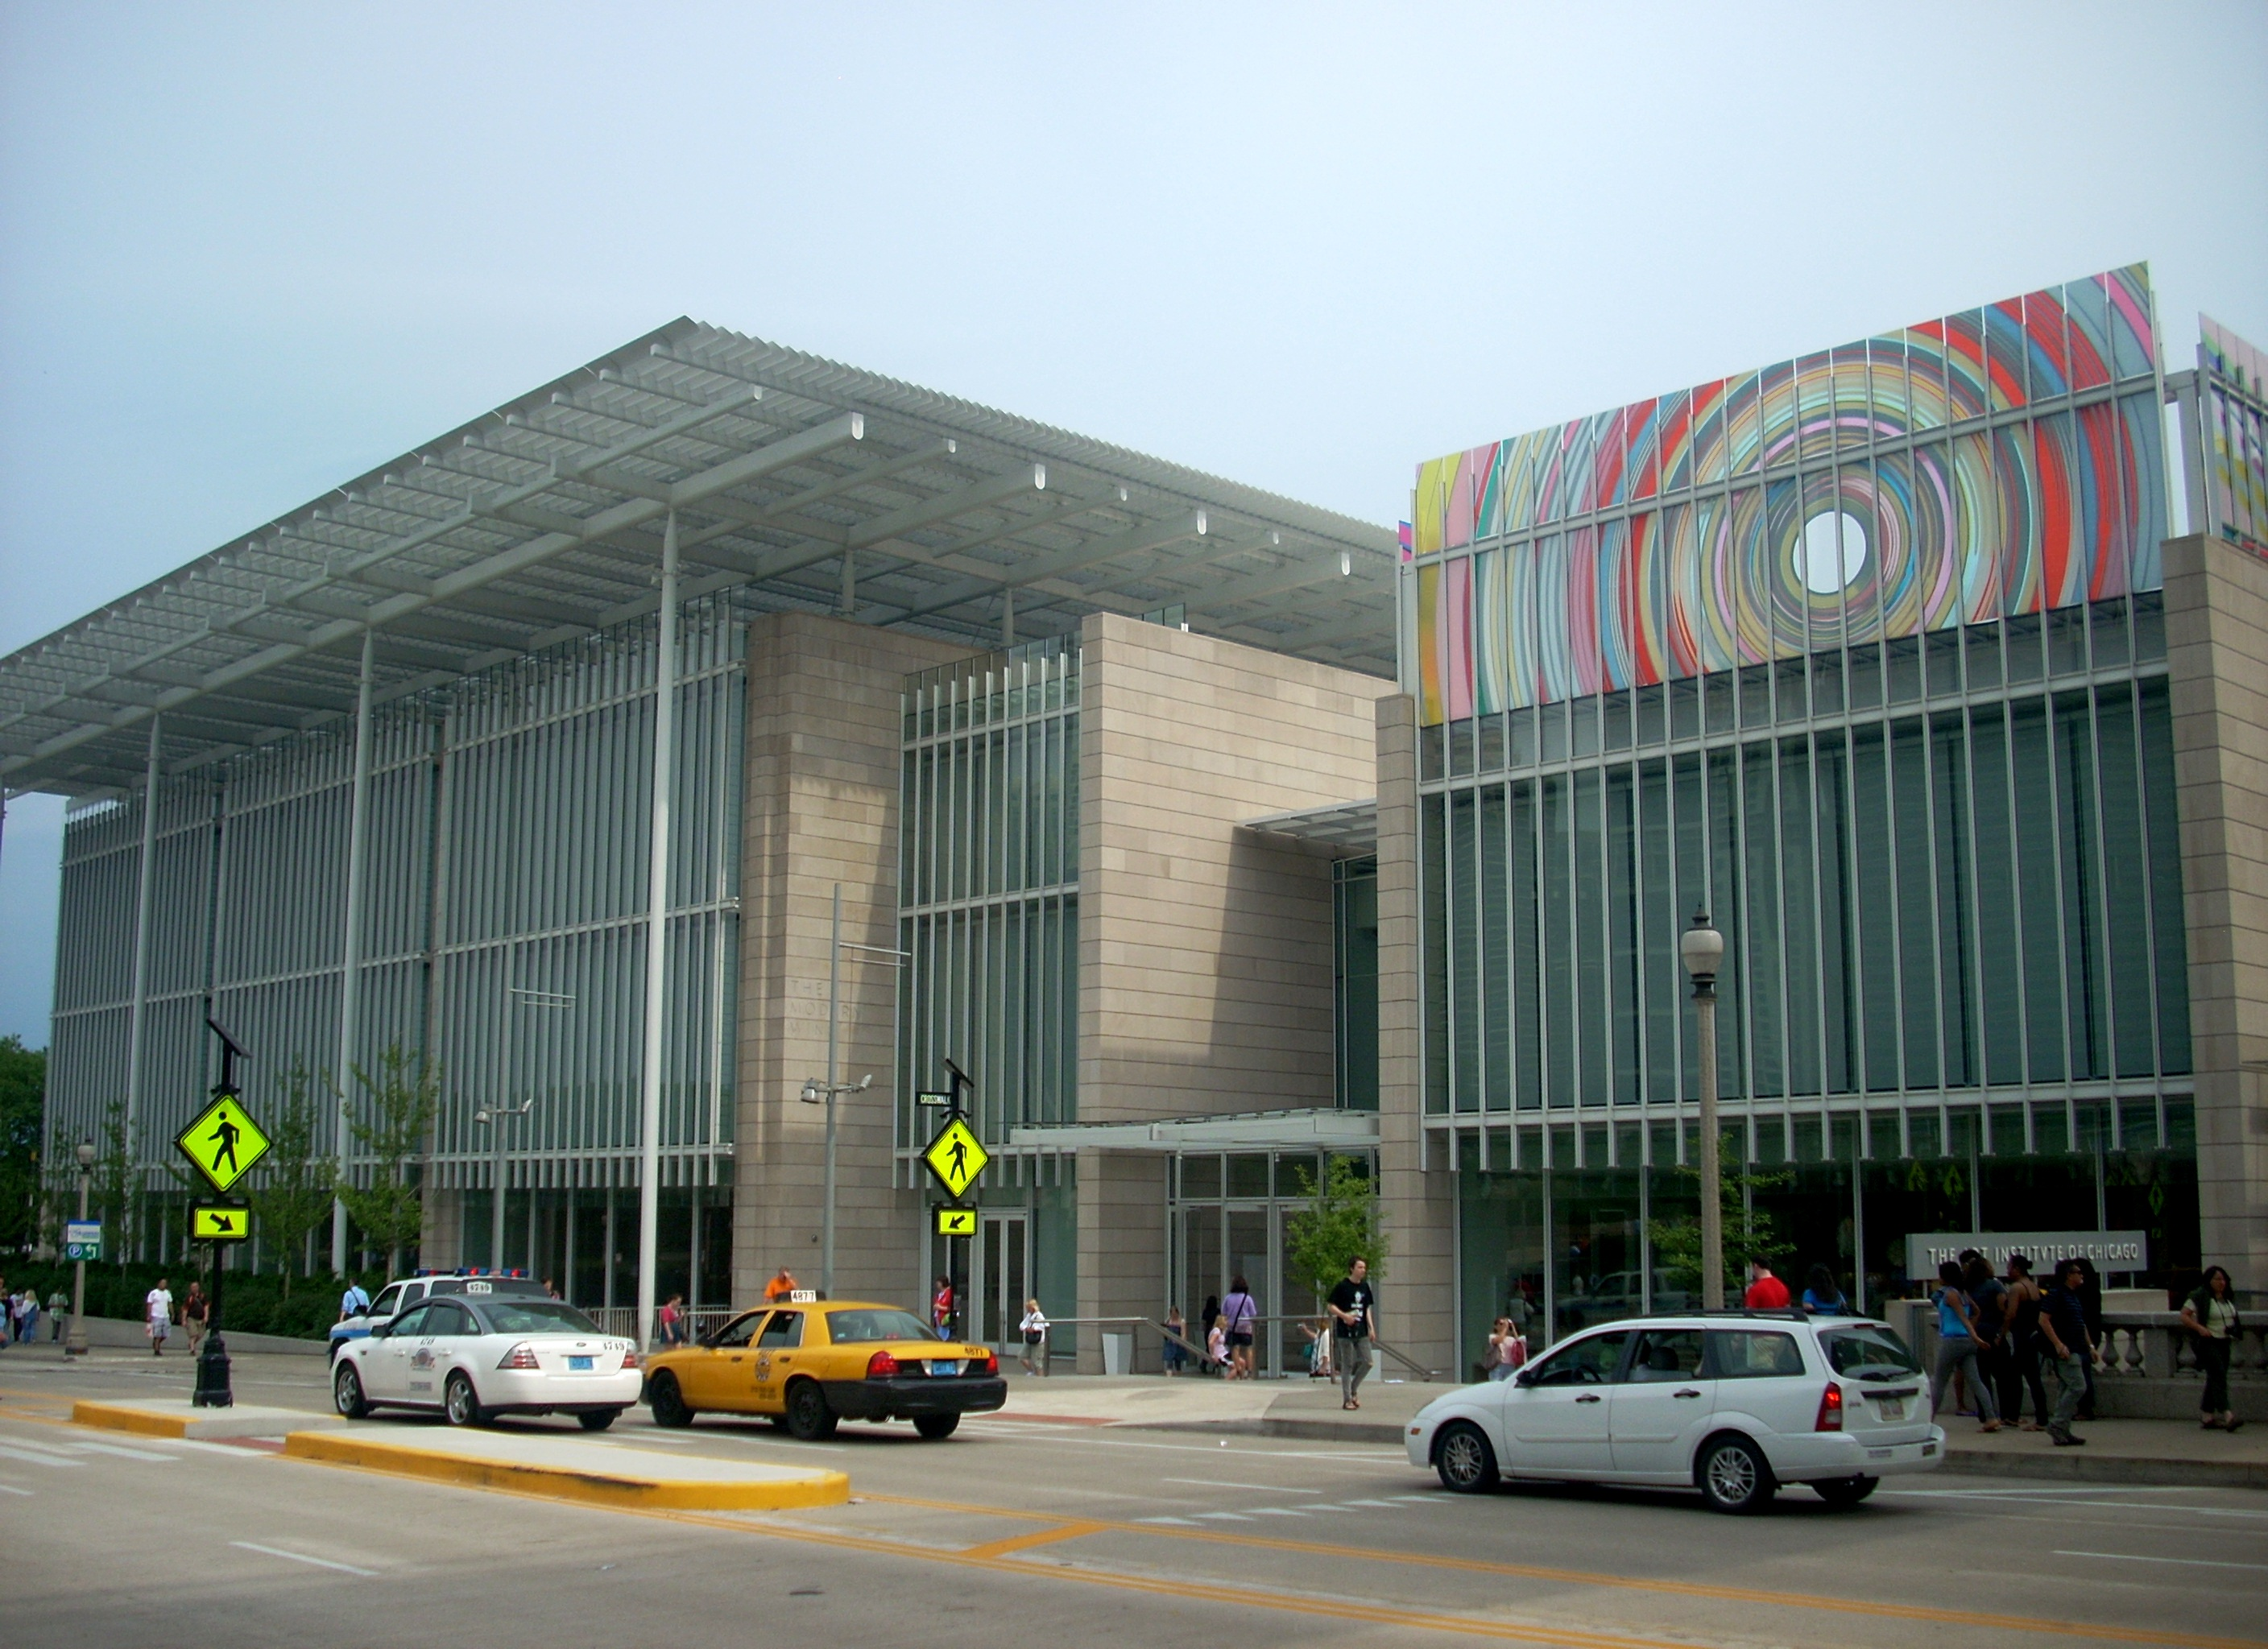 Image of the exterior of the Art Institute of Chicago Modern wing